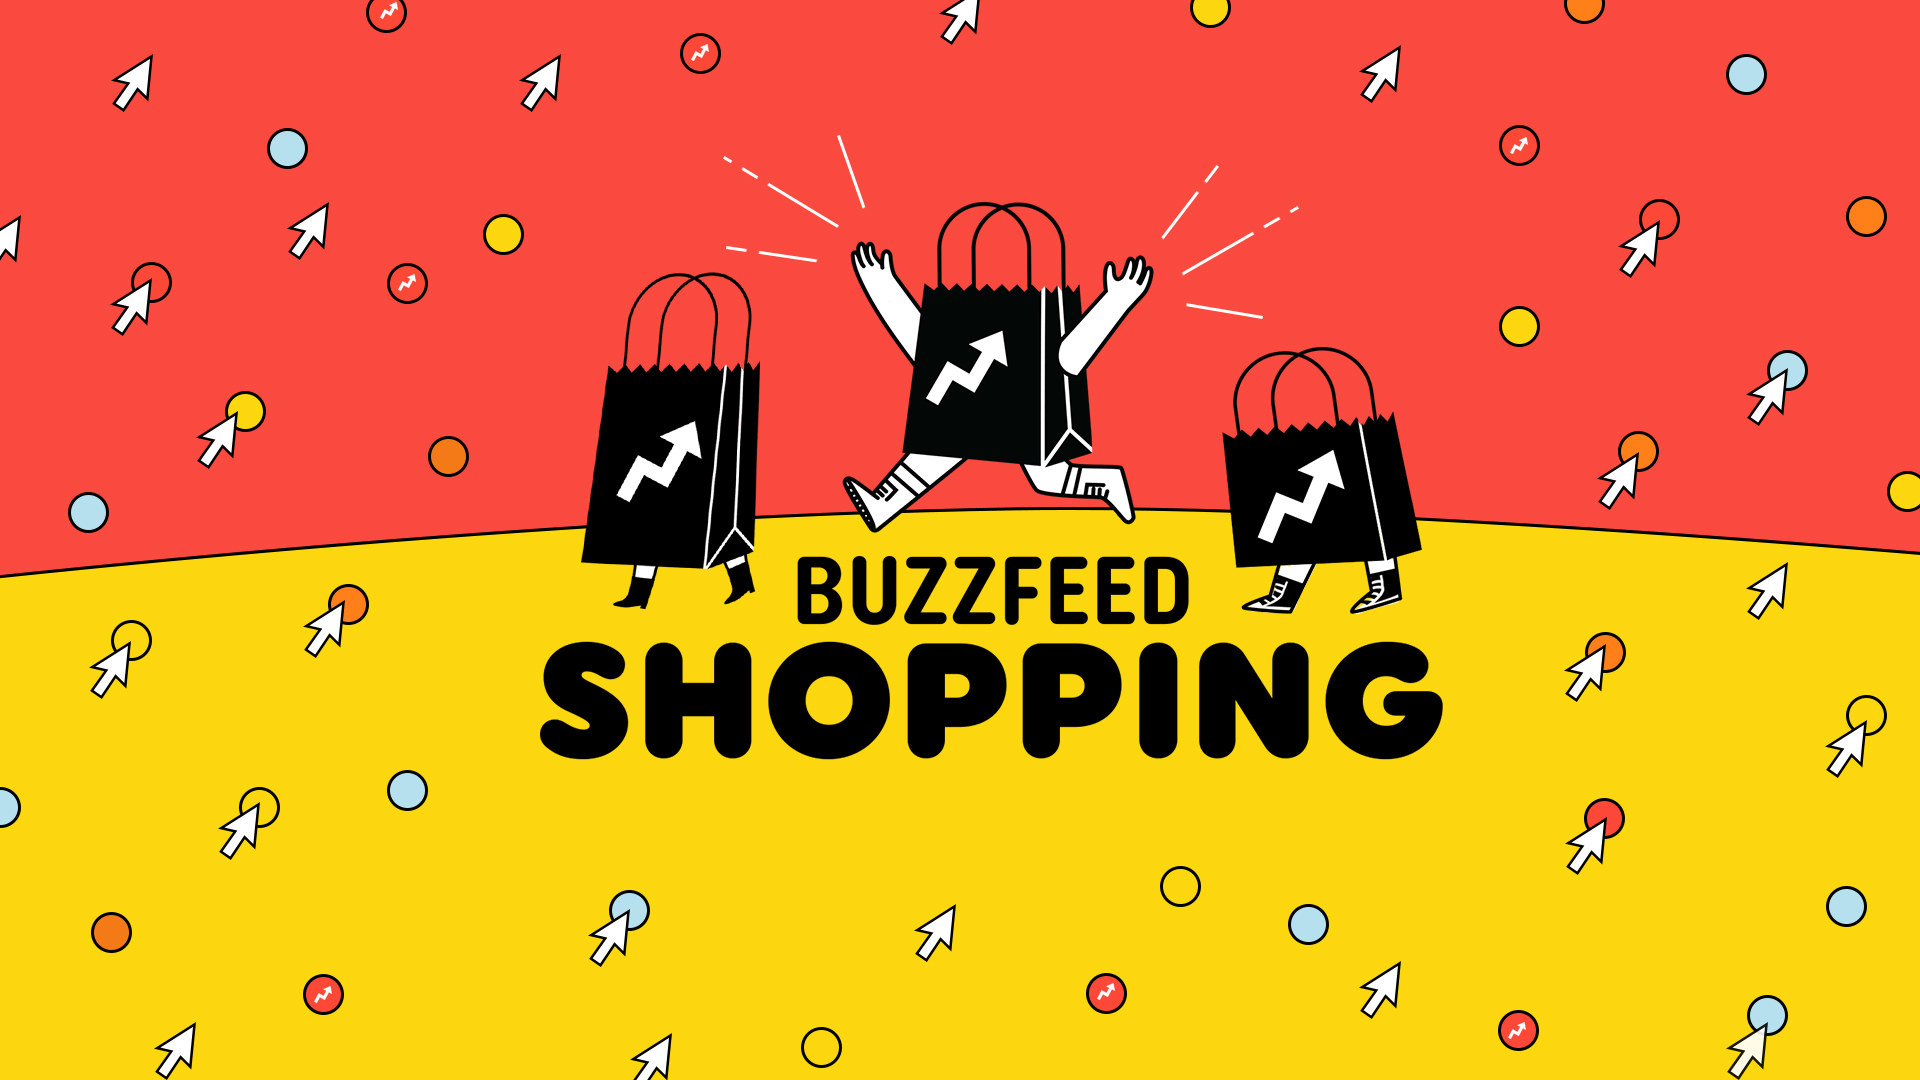 BuzzFeed Shopping logo